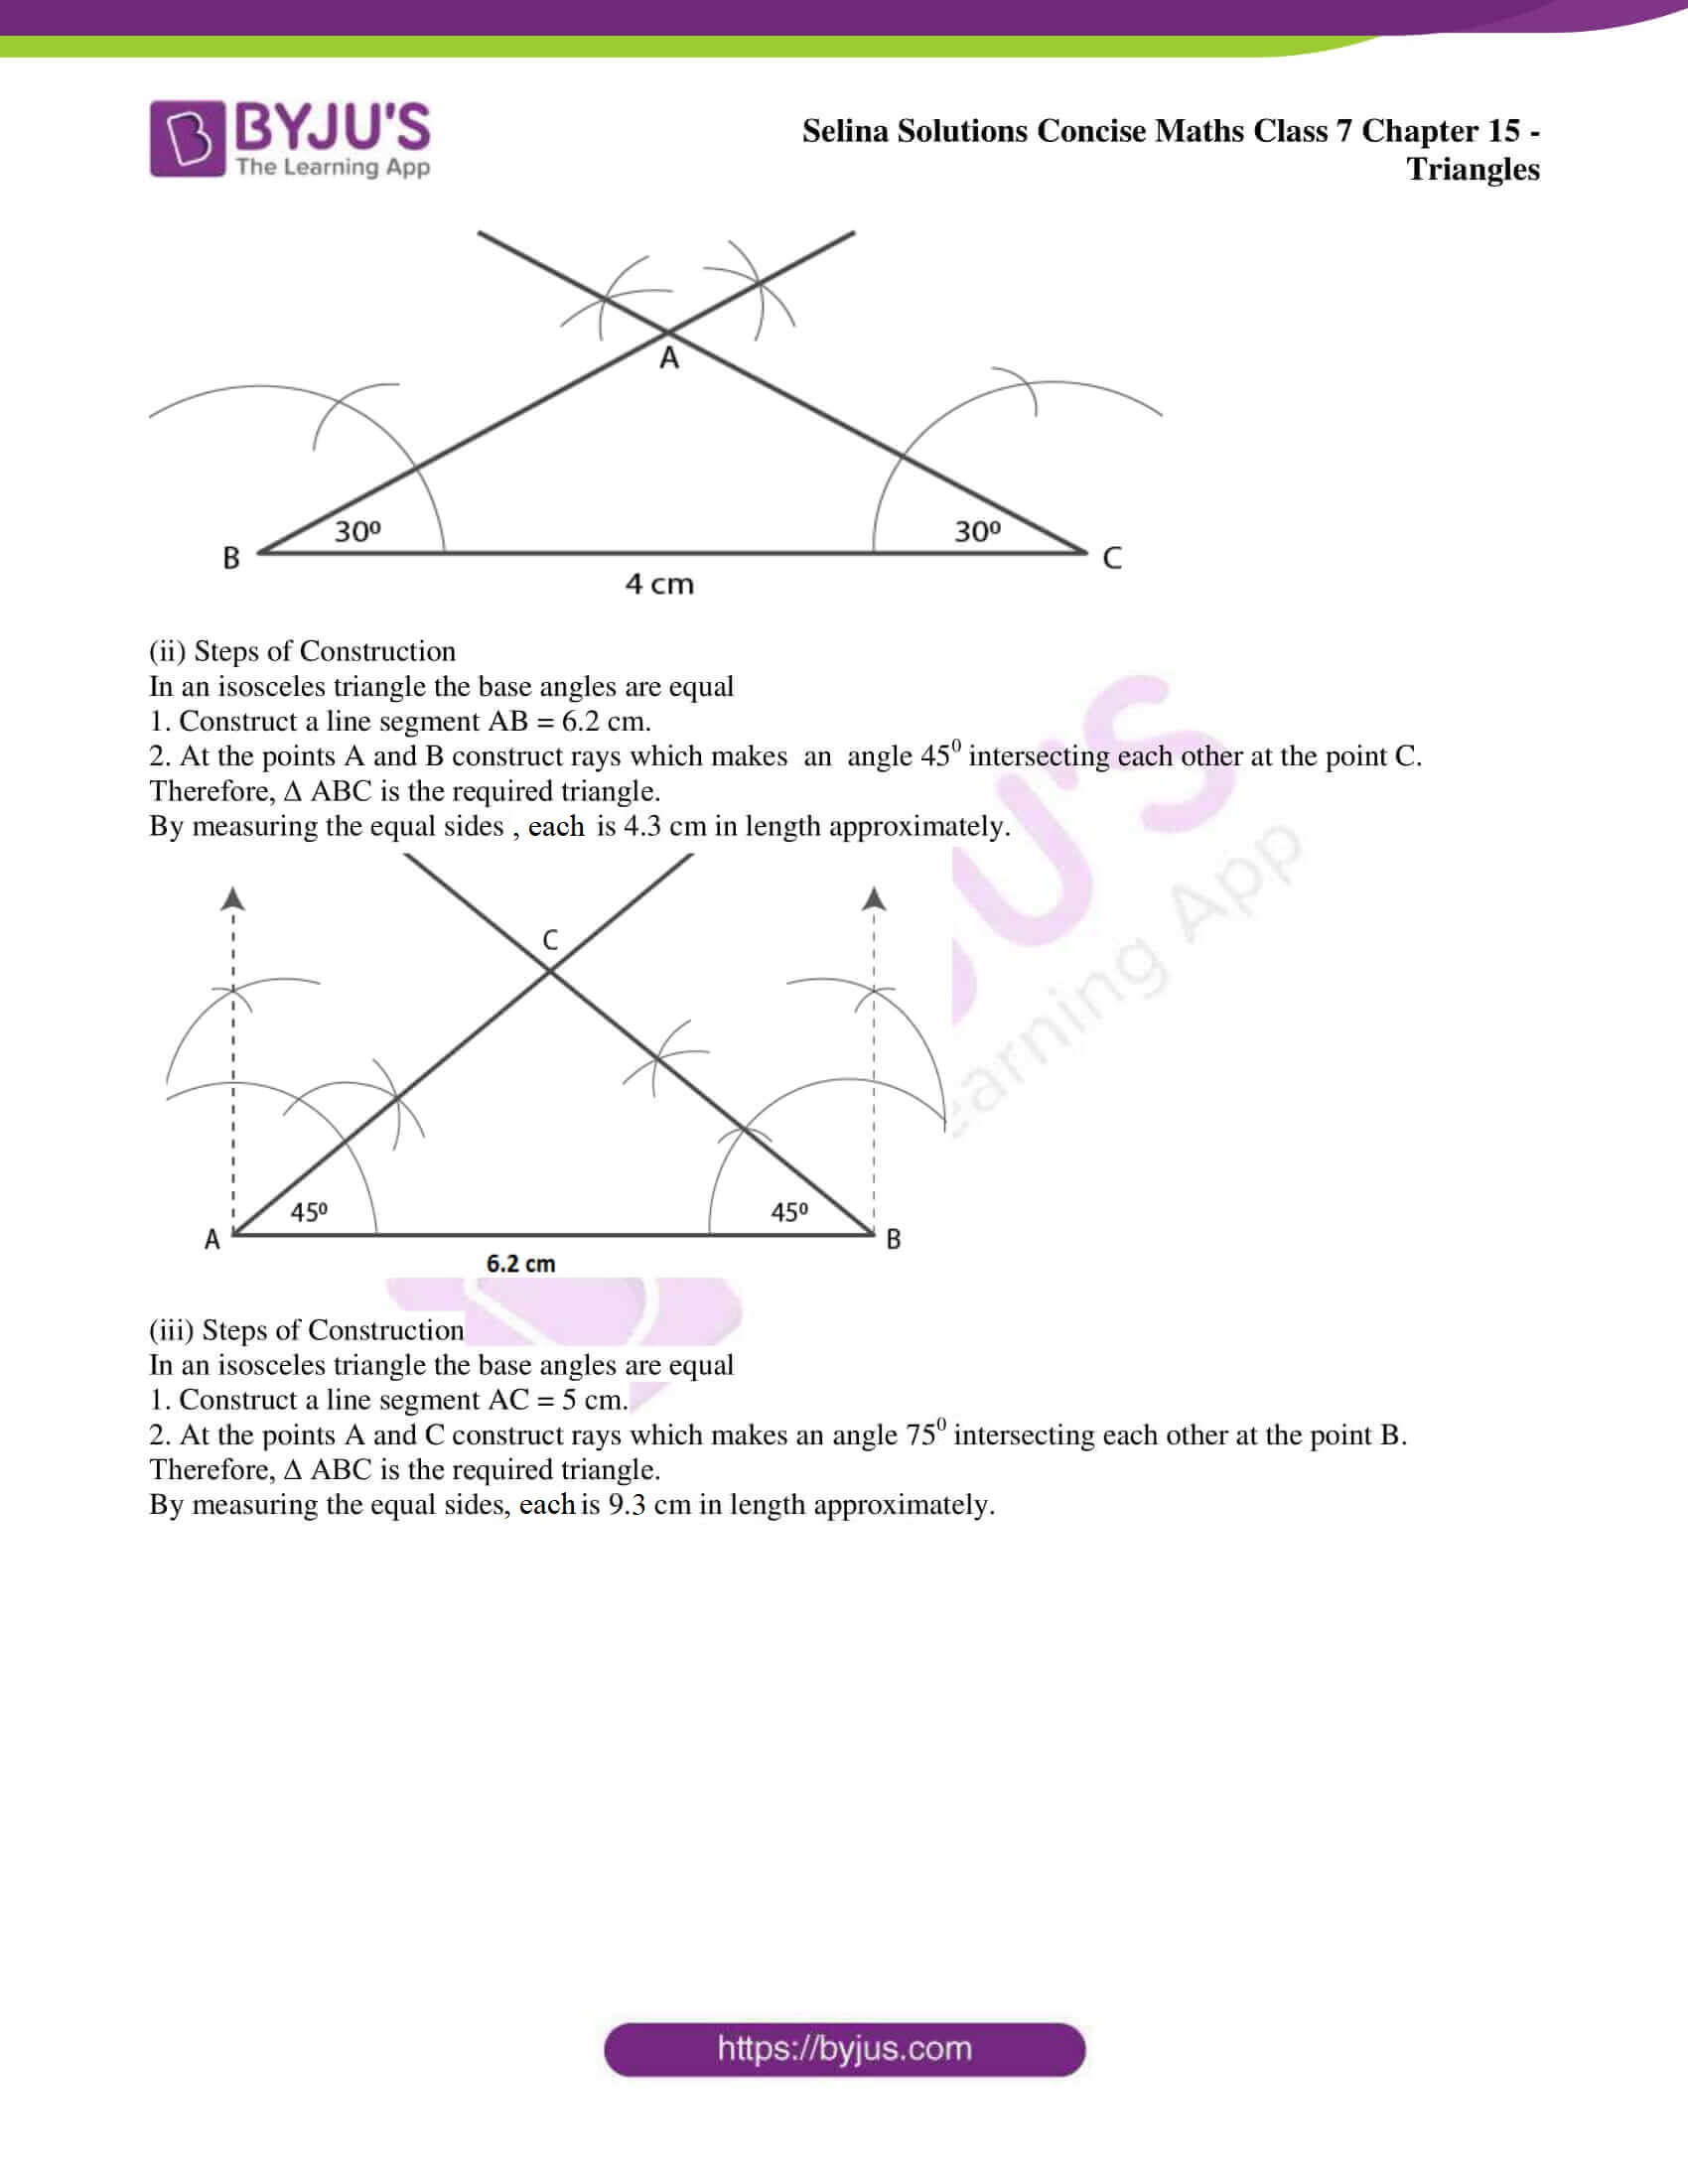 selina sol concise maths class 7 chapter 15 ex c 05